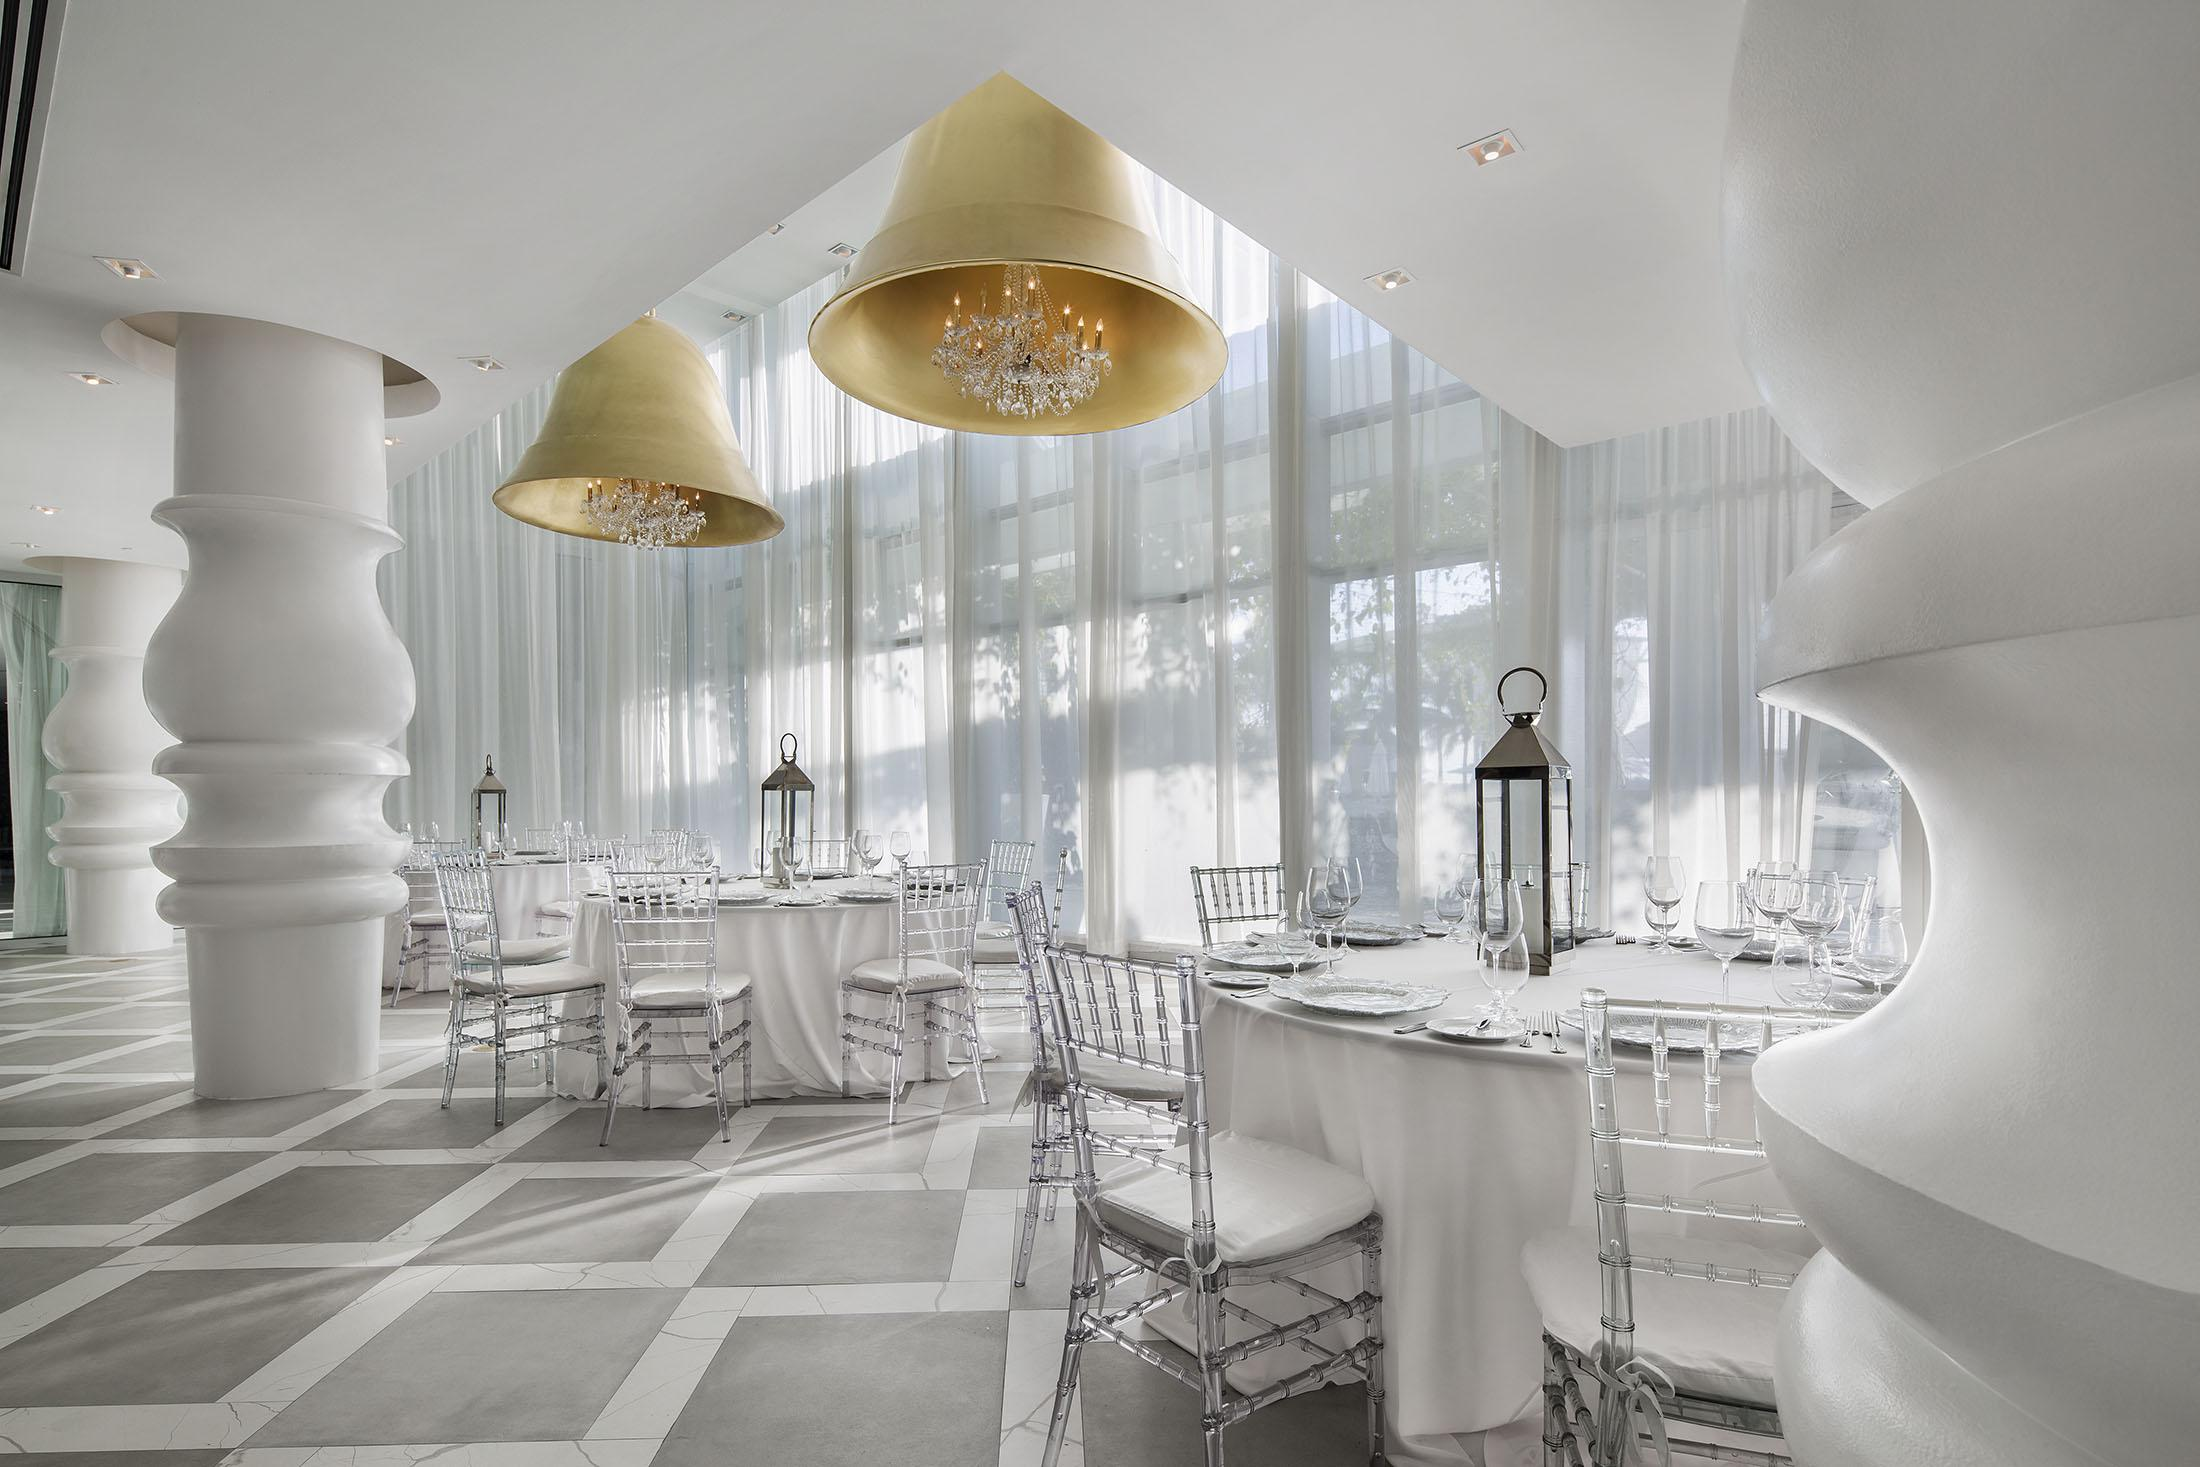 Tables and chairs set up for an event in a white room.